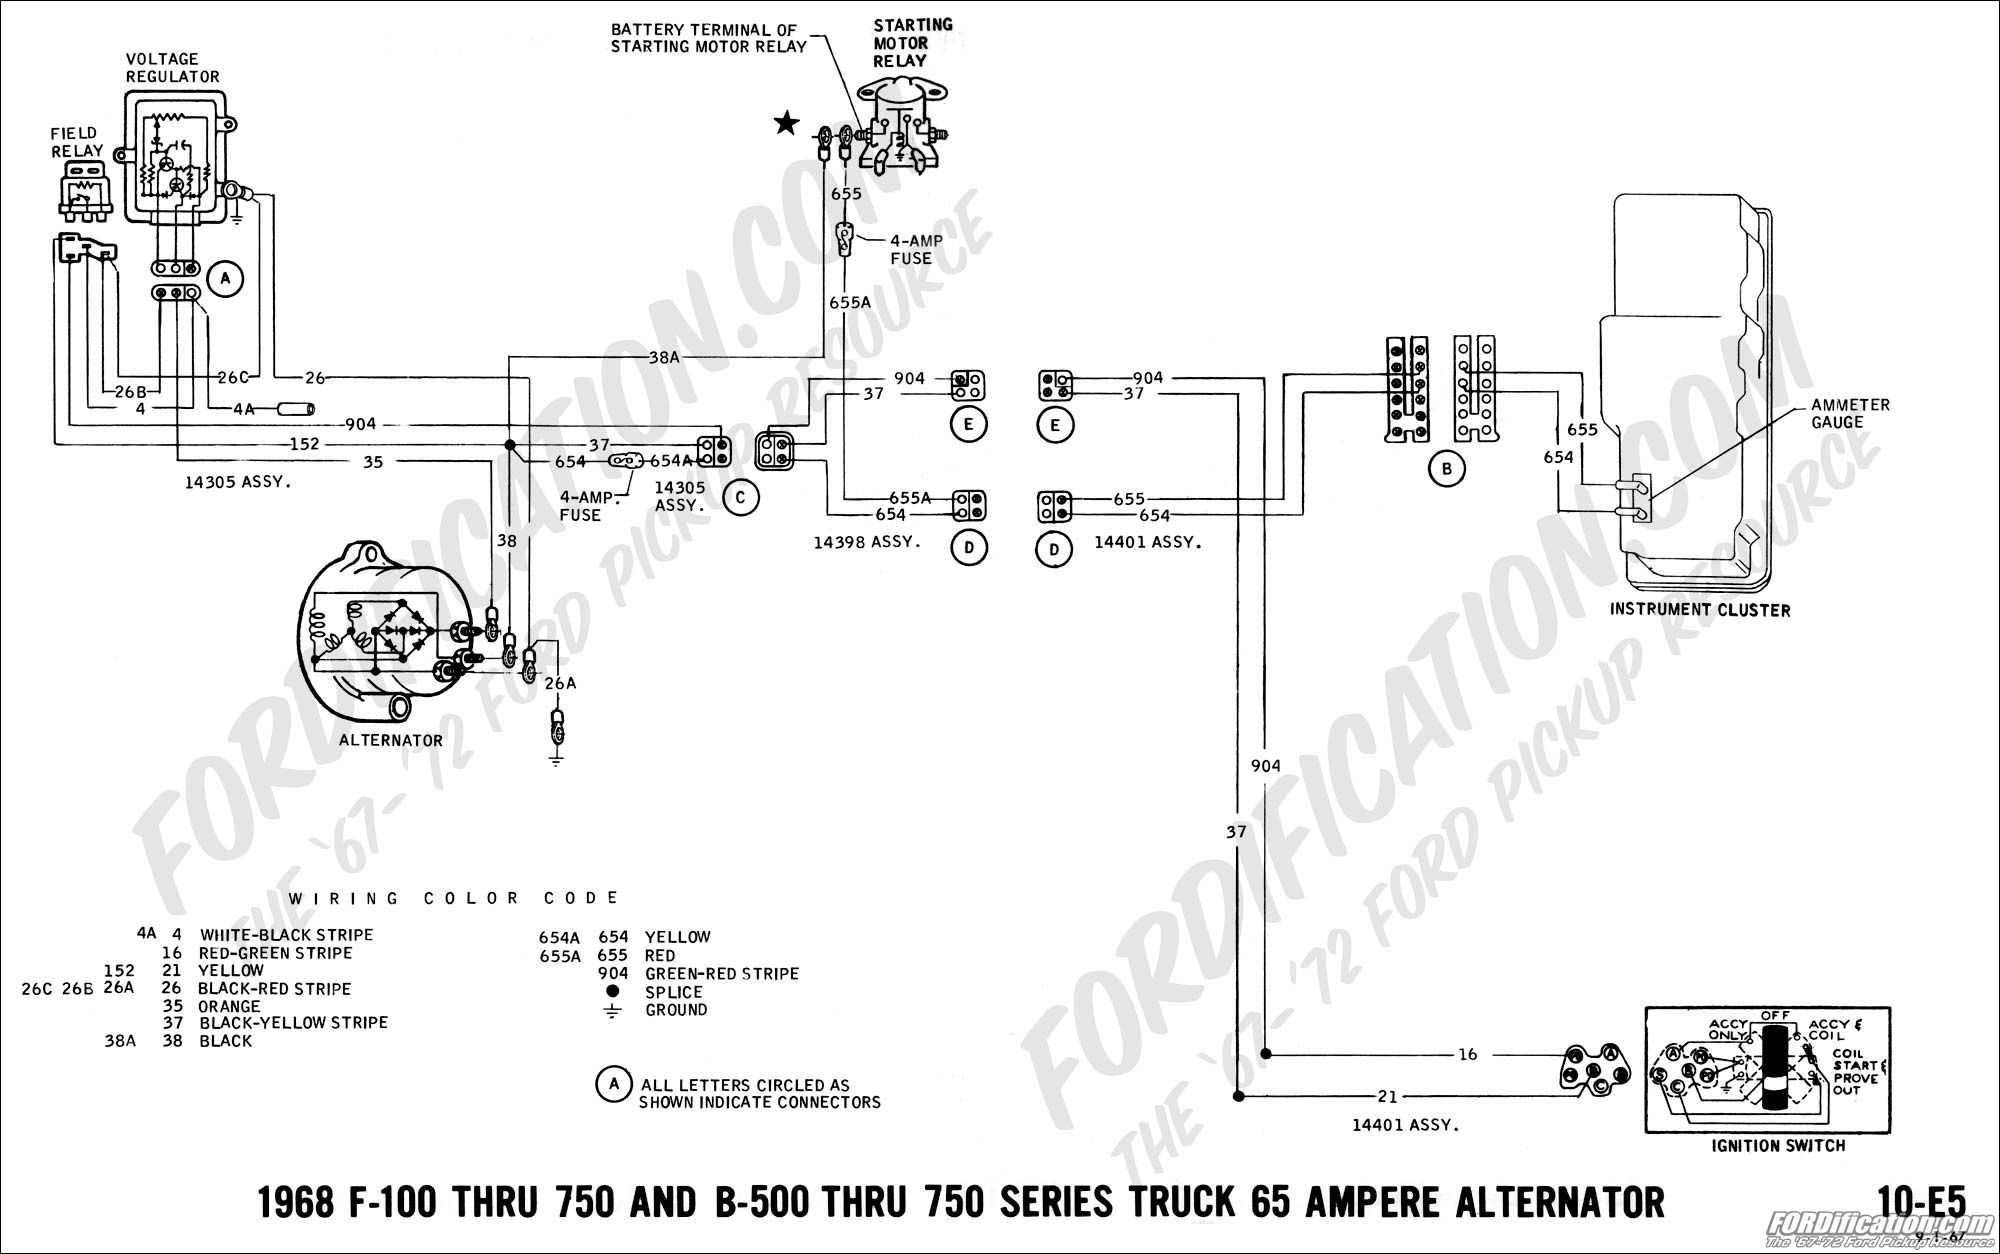 68 ford alternator wiring diagram 76 ford f150 diagram ford rh pinterest com